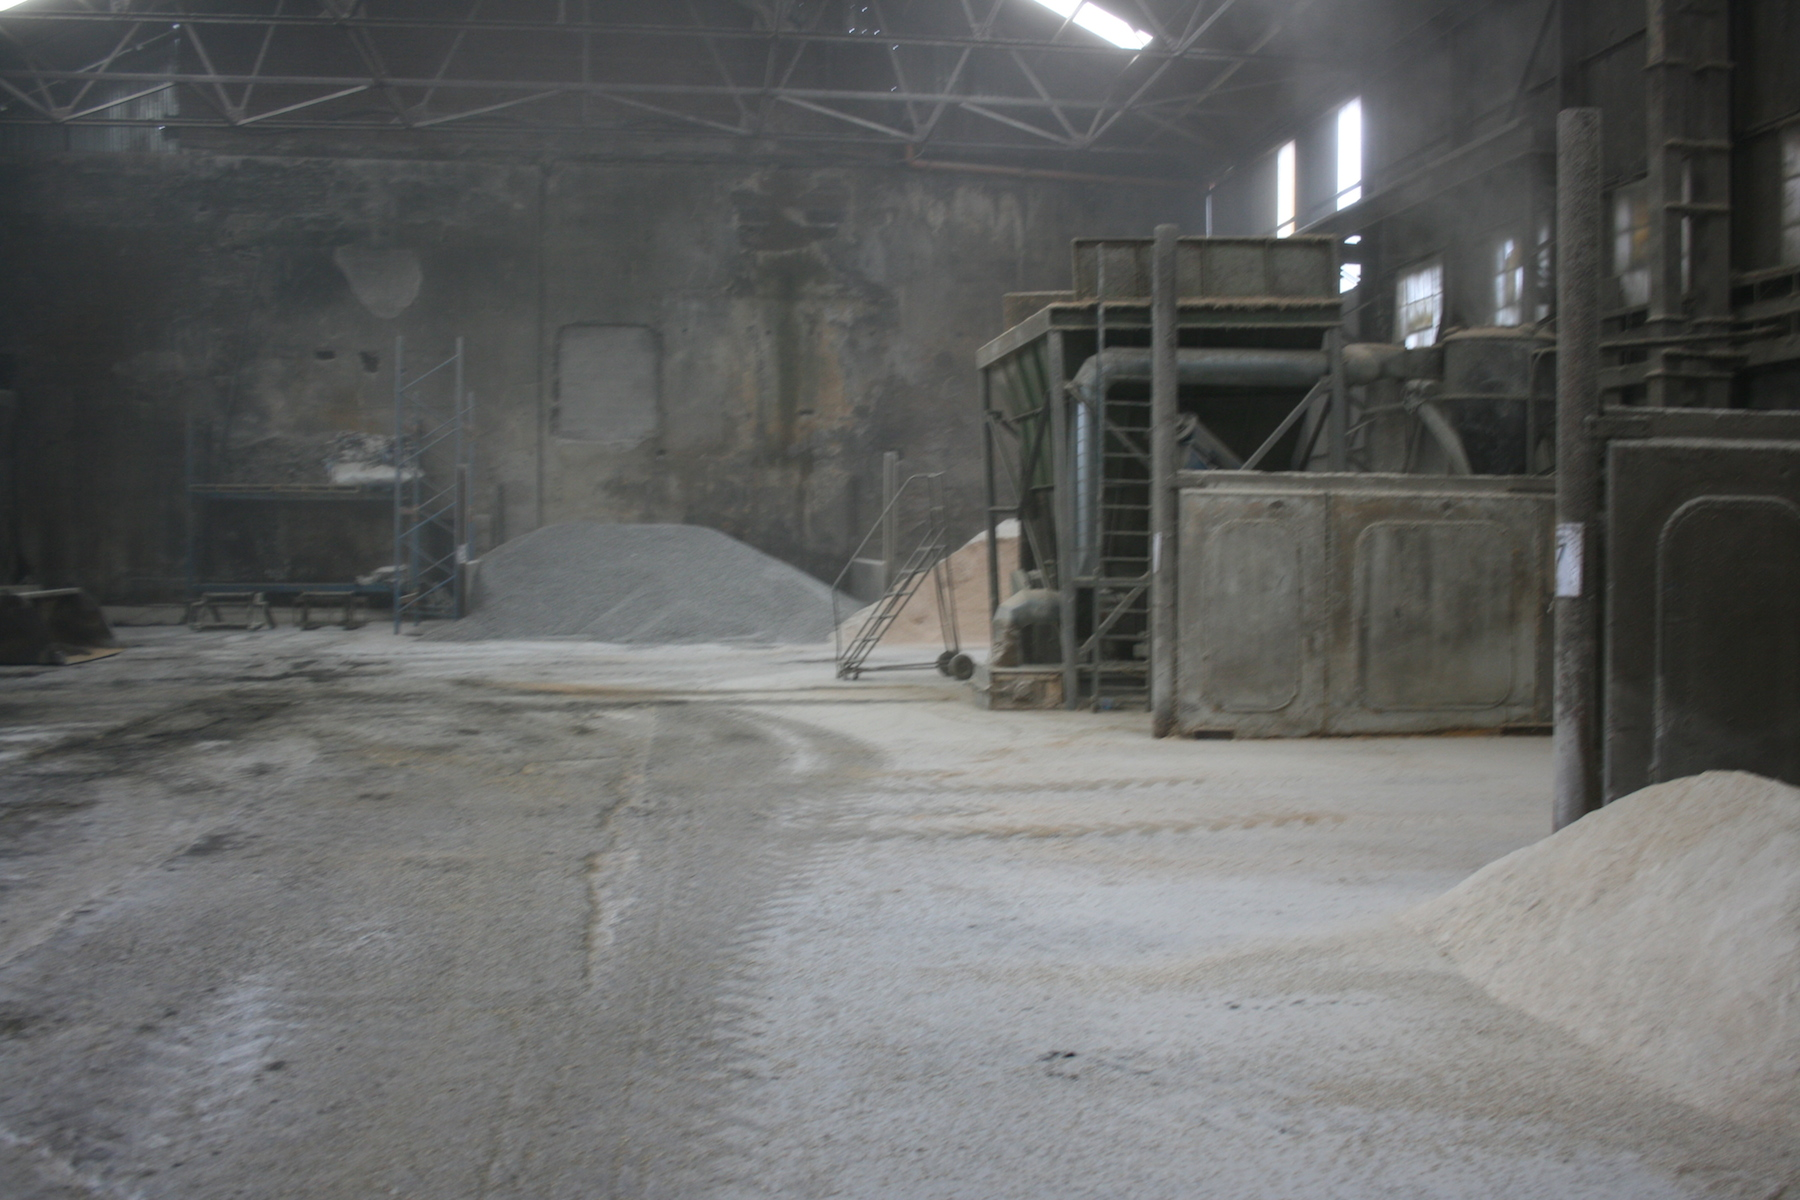 Oat pellet production area